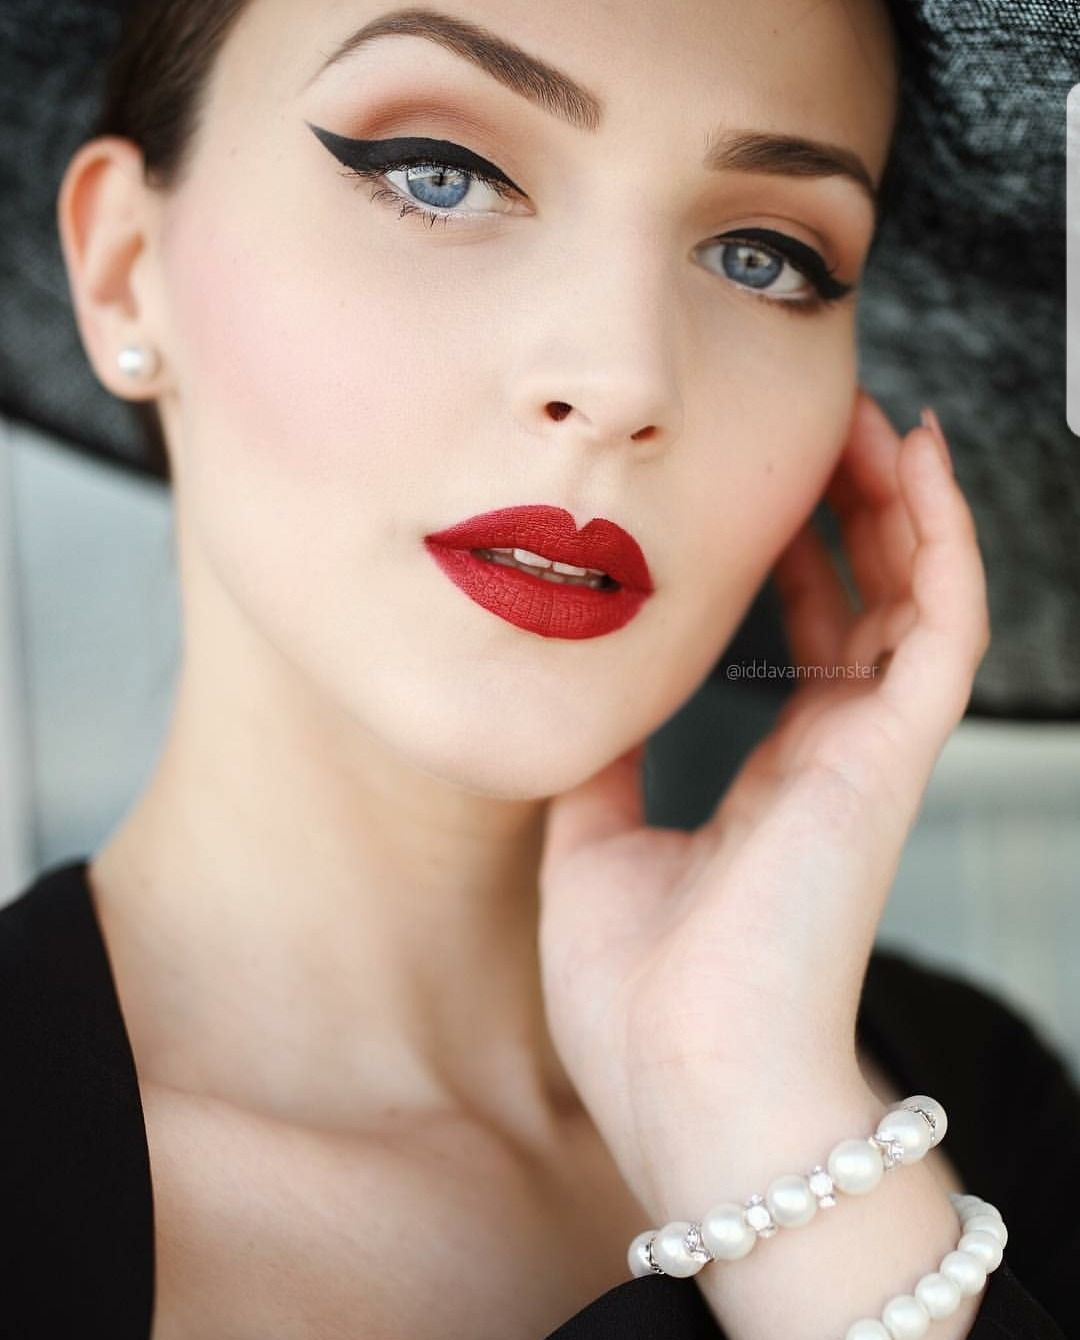 The Glamourous Life Vintage Makeup Looks Glamour Makeup Retro